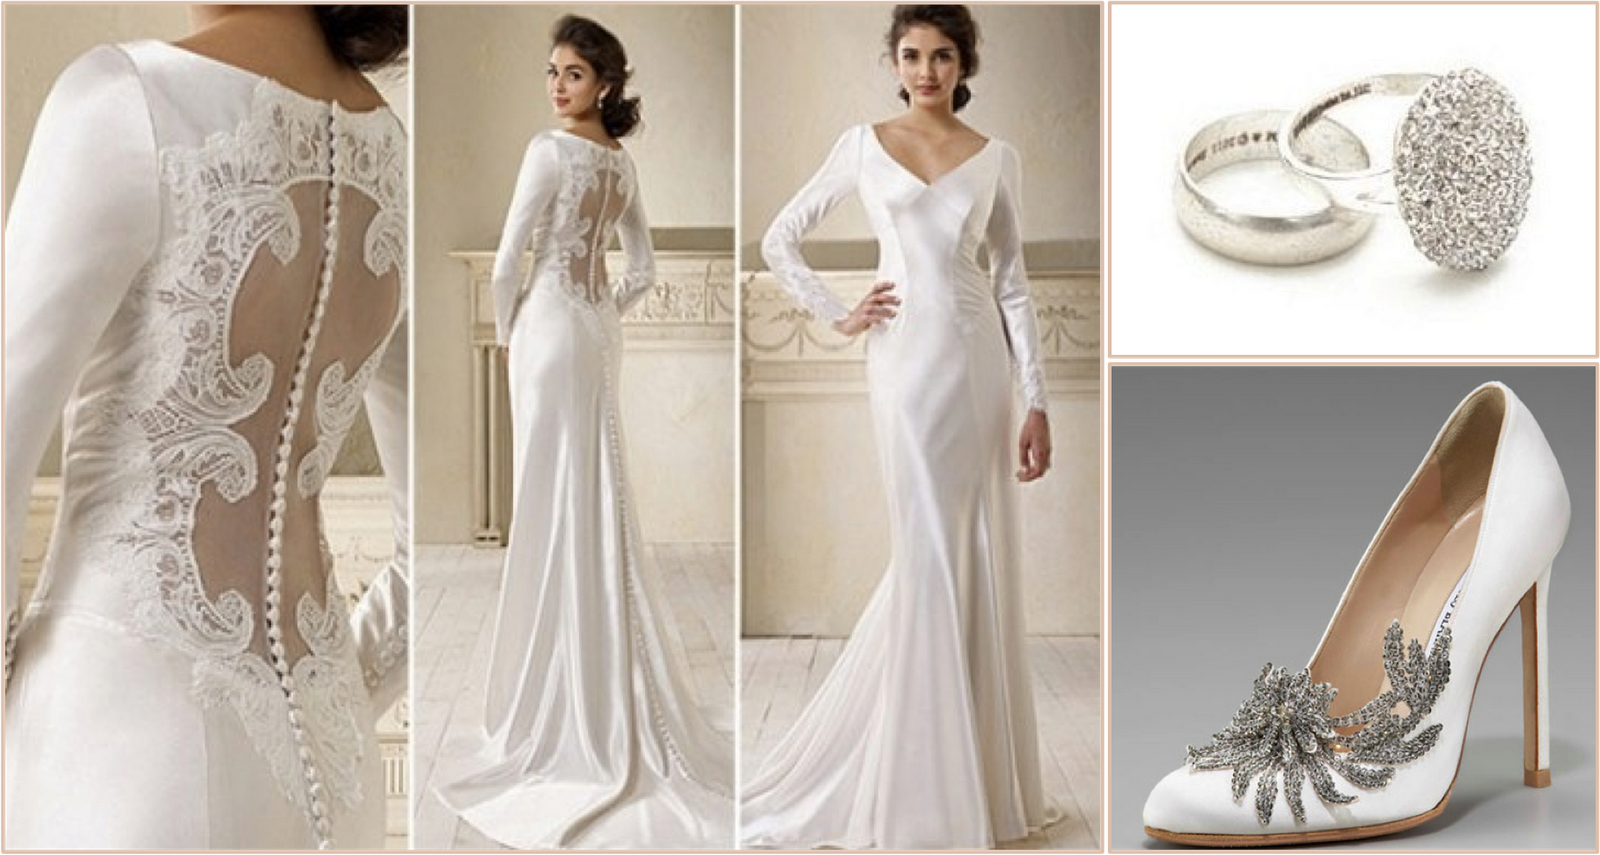 Bella Wedding Dress Alfred Angelo : Bella twilight wedding dress alfred angelo galleryhip